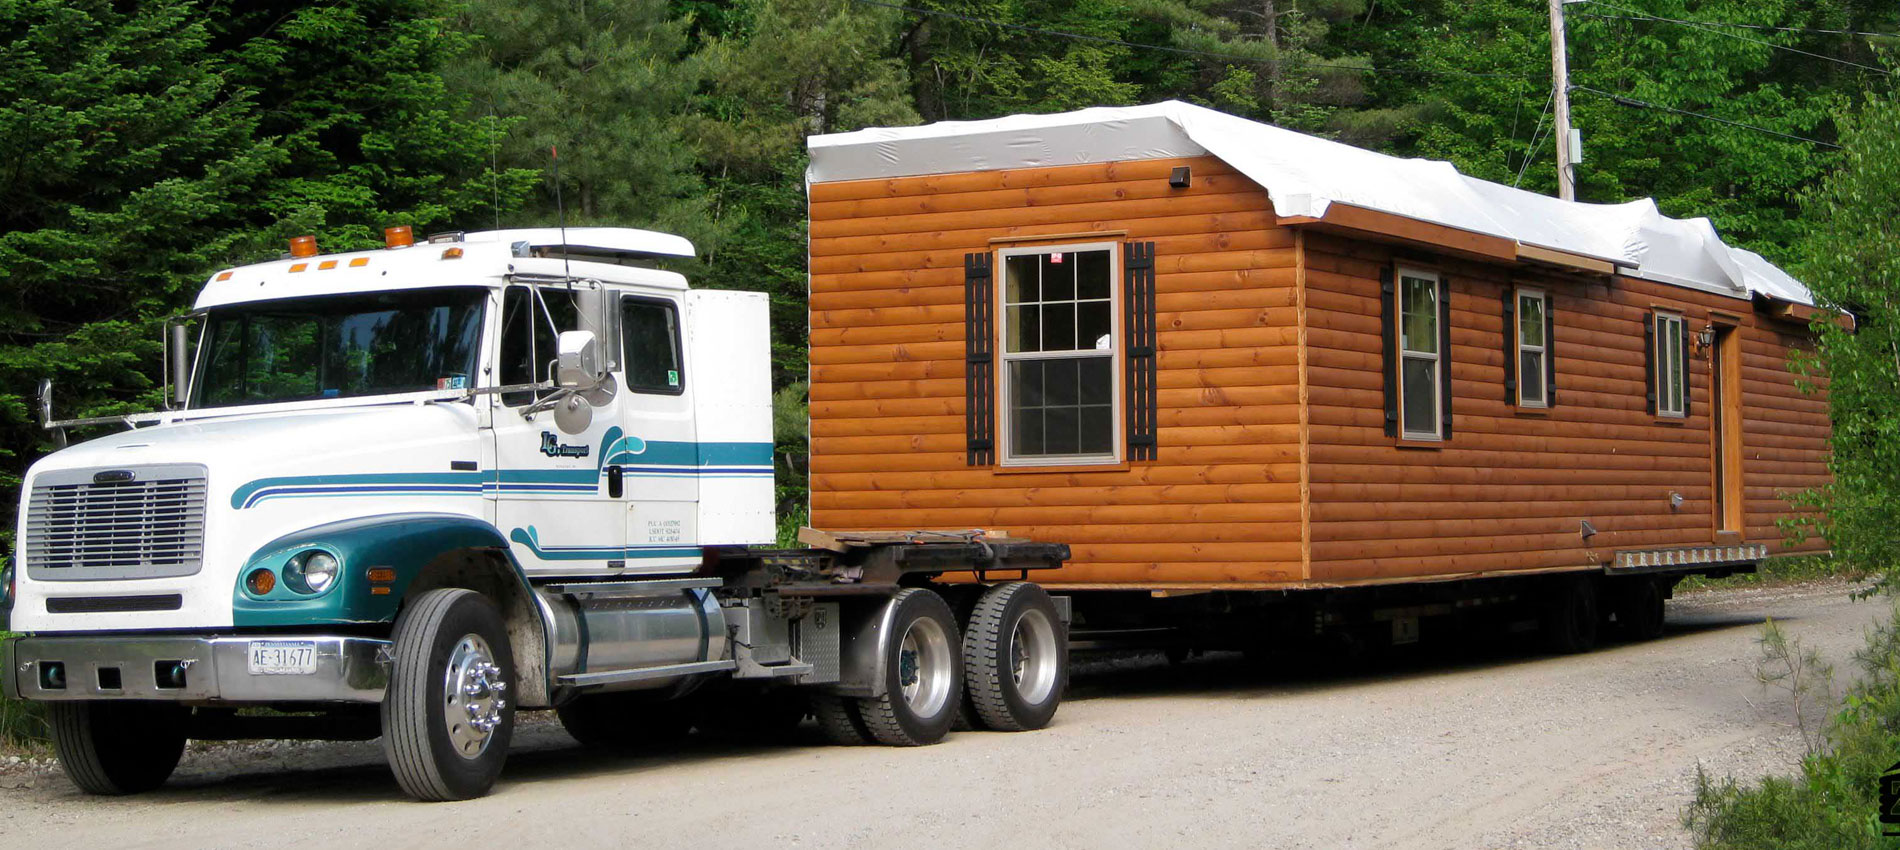 amish log cabins for sale in pennsylvania by zook cabins being delivered